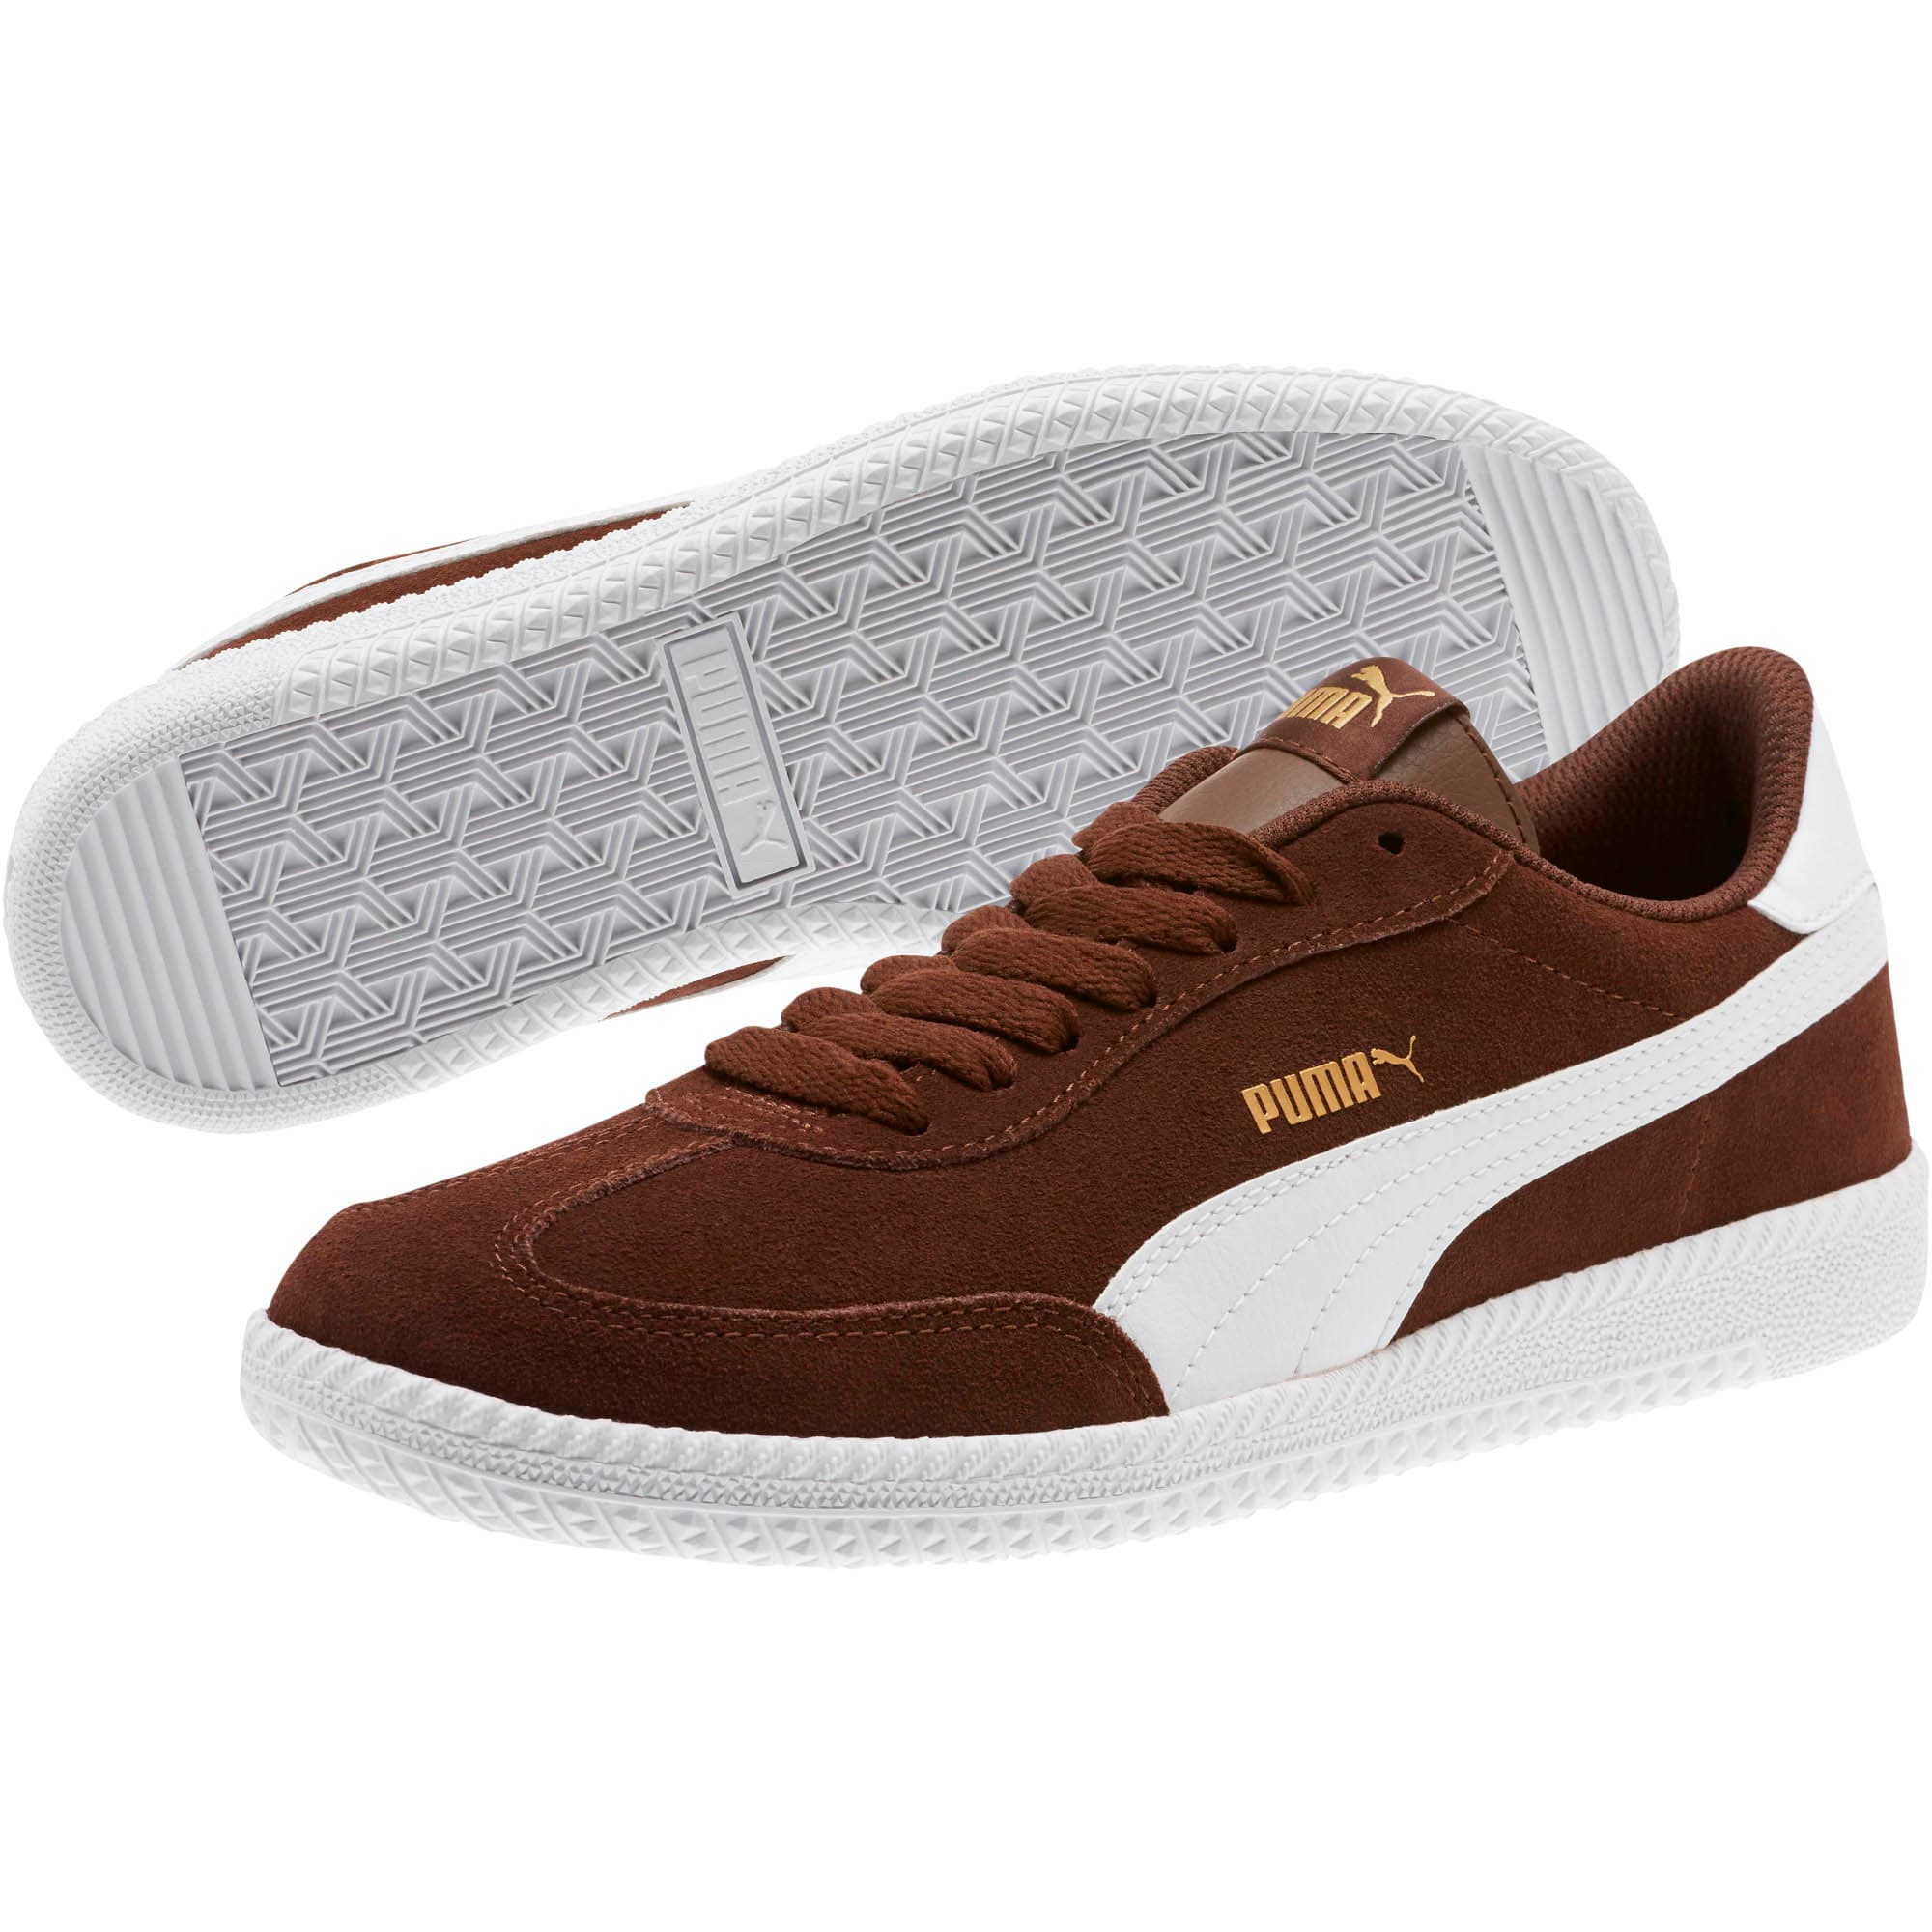 Thumbnail 2 of Astro Cup Suede Sneakers, Chestnut-Puma White, medium